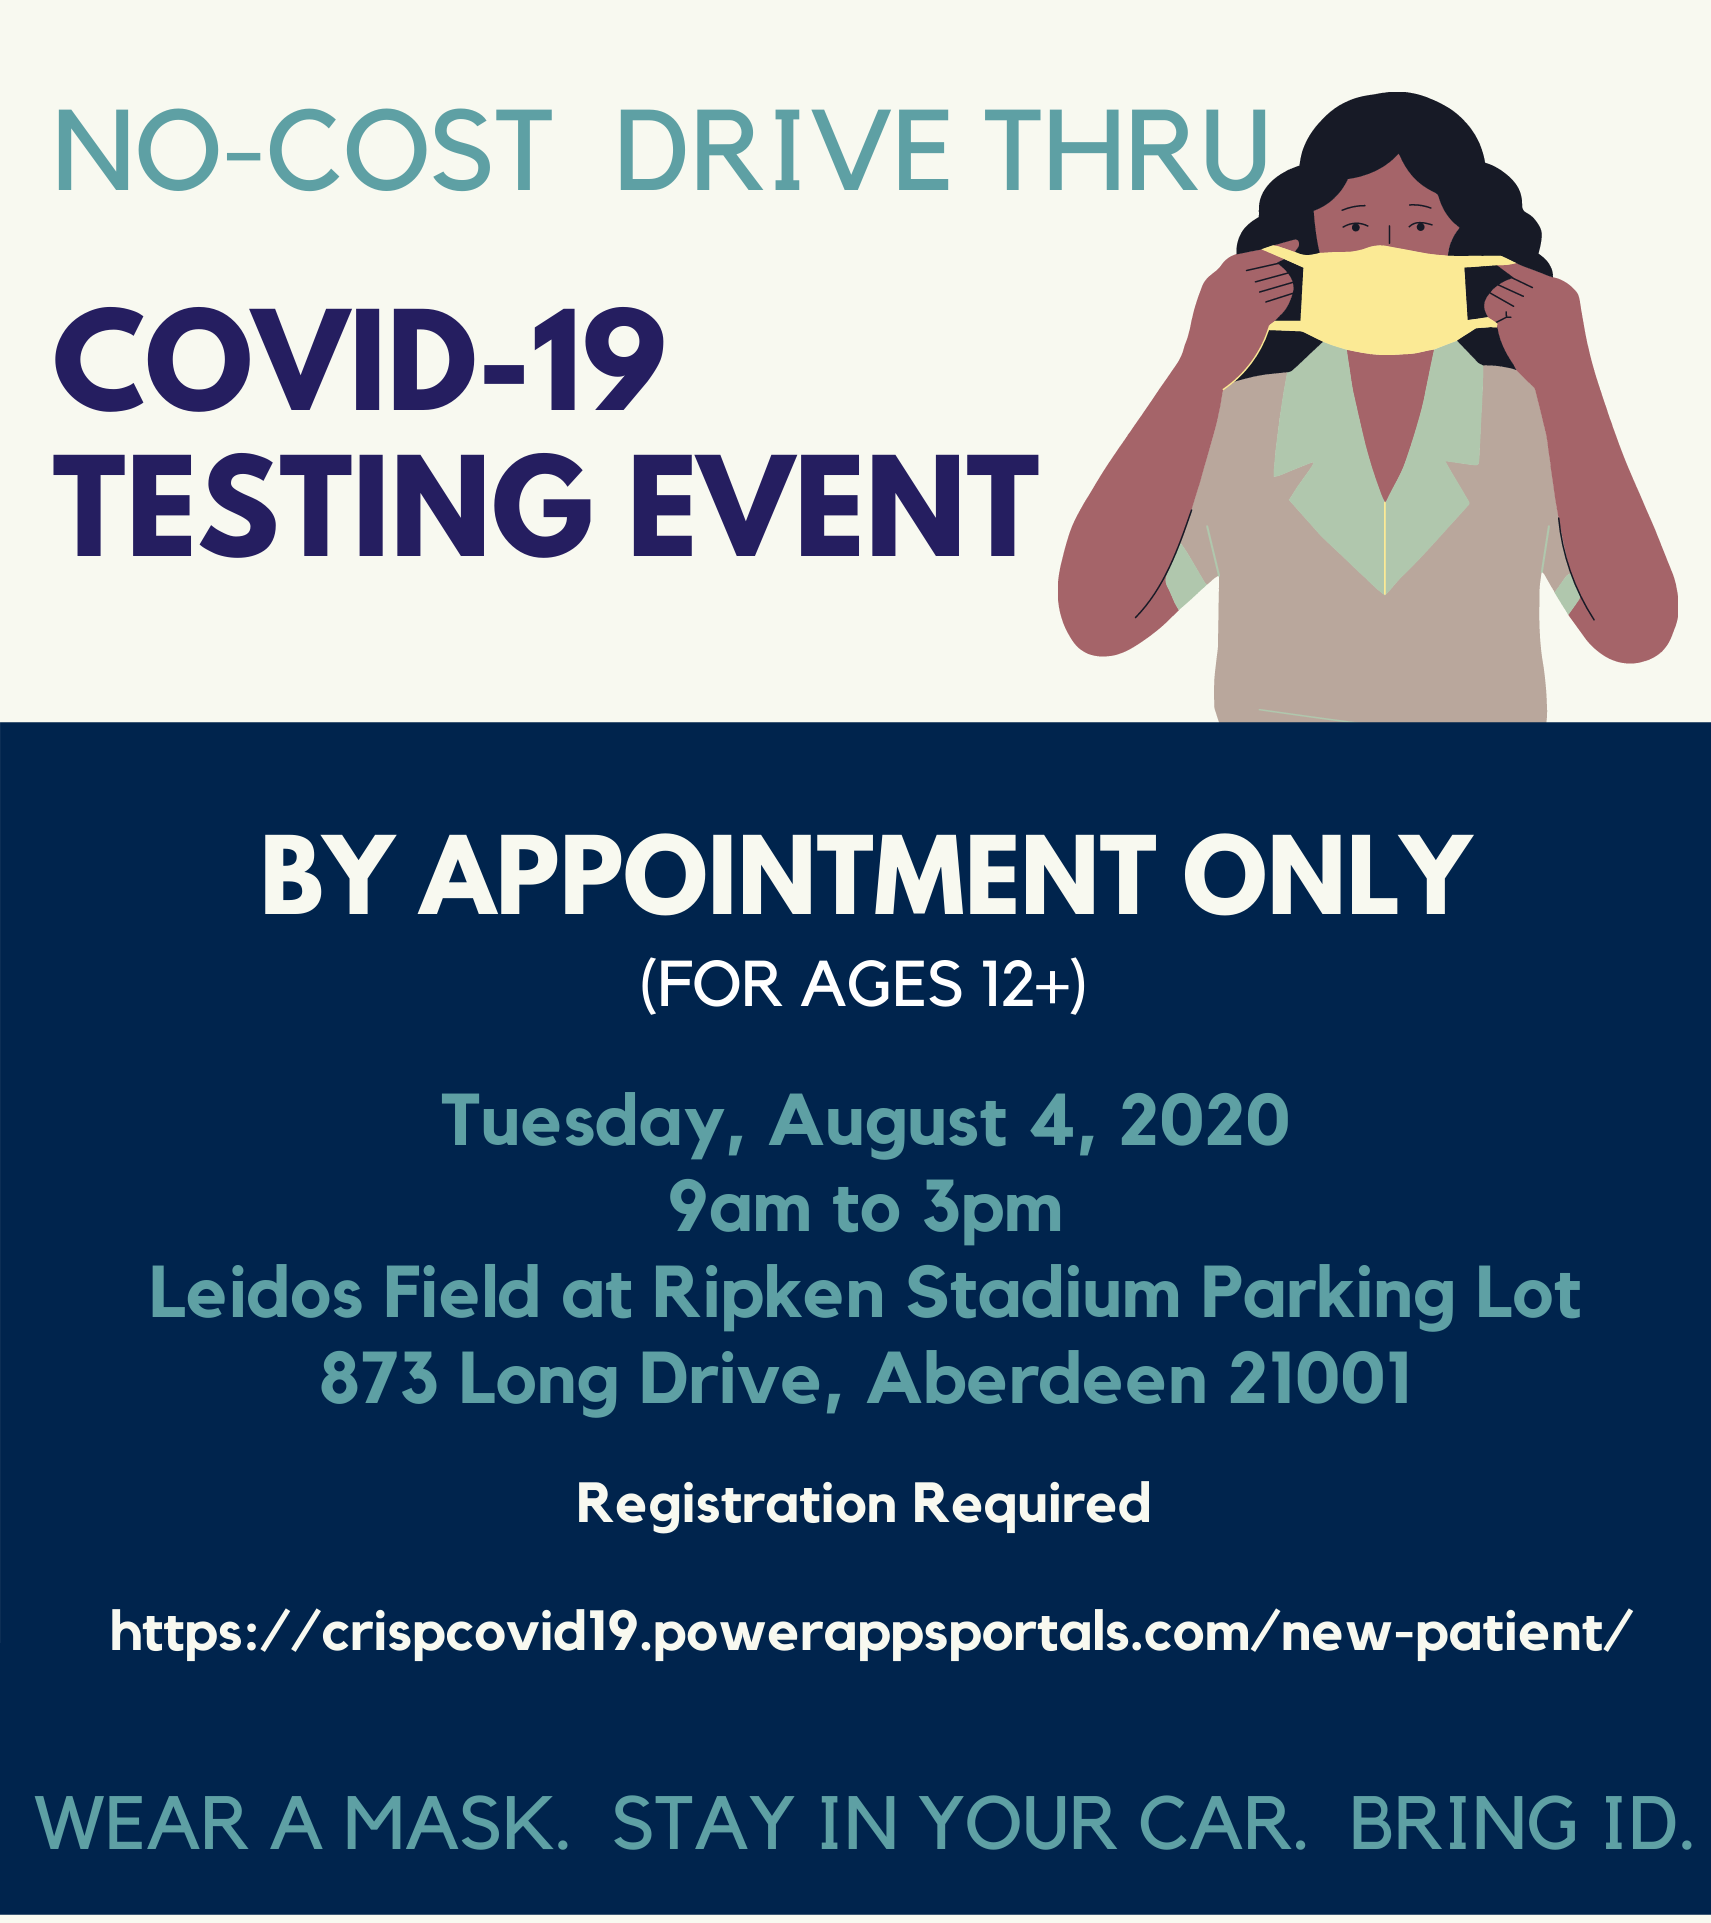 Harford County Health Department To Hold No Cost Drive Thru COVID-19 Testing on August 4th